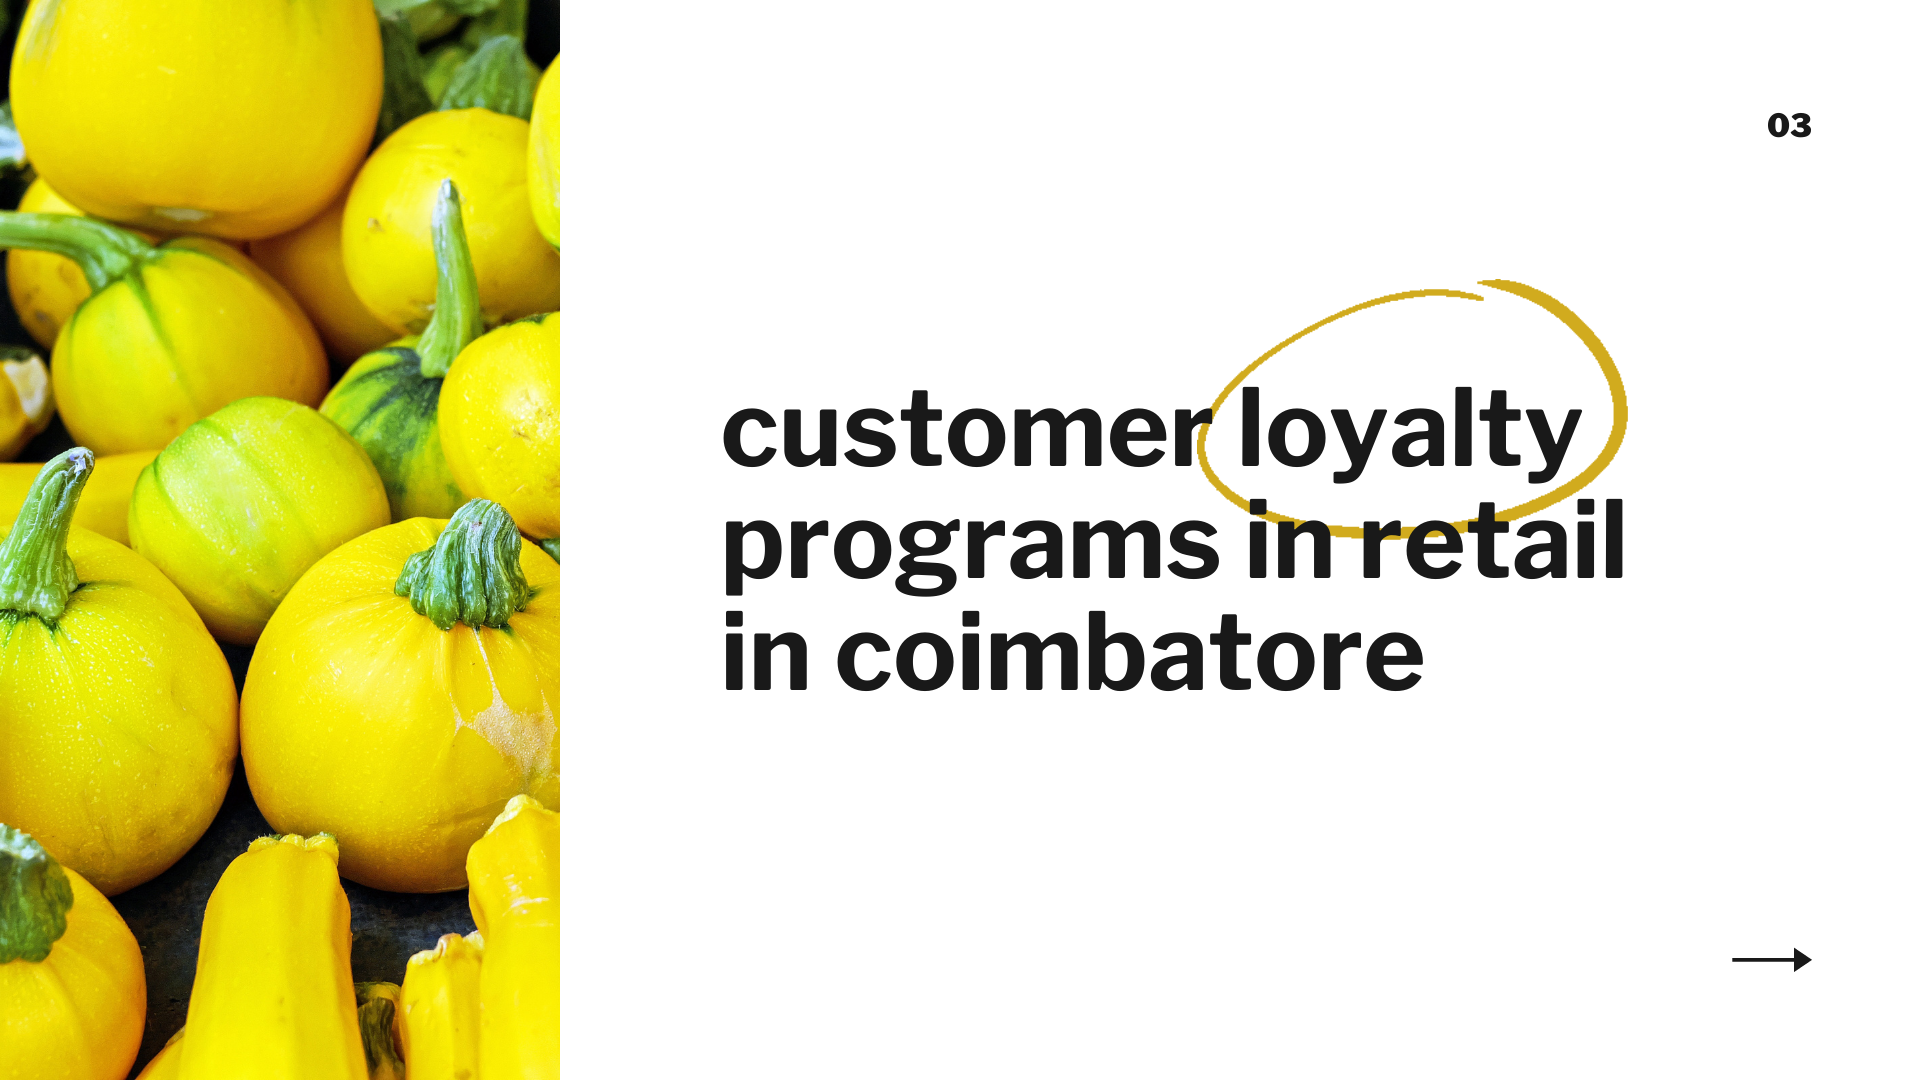 customer loyalty programs in retail in coimbatore